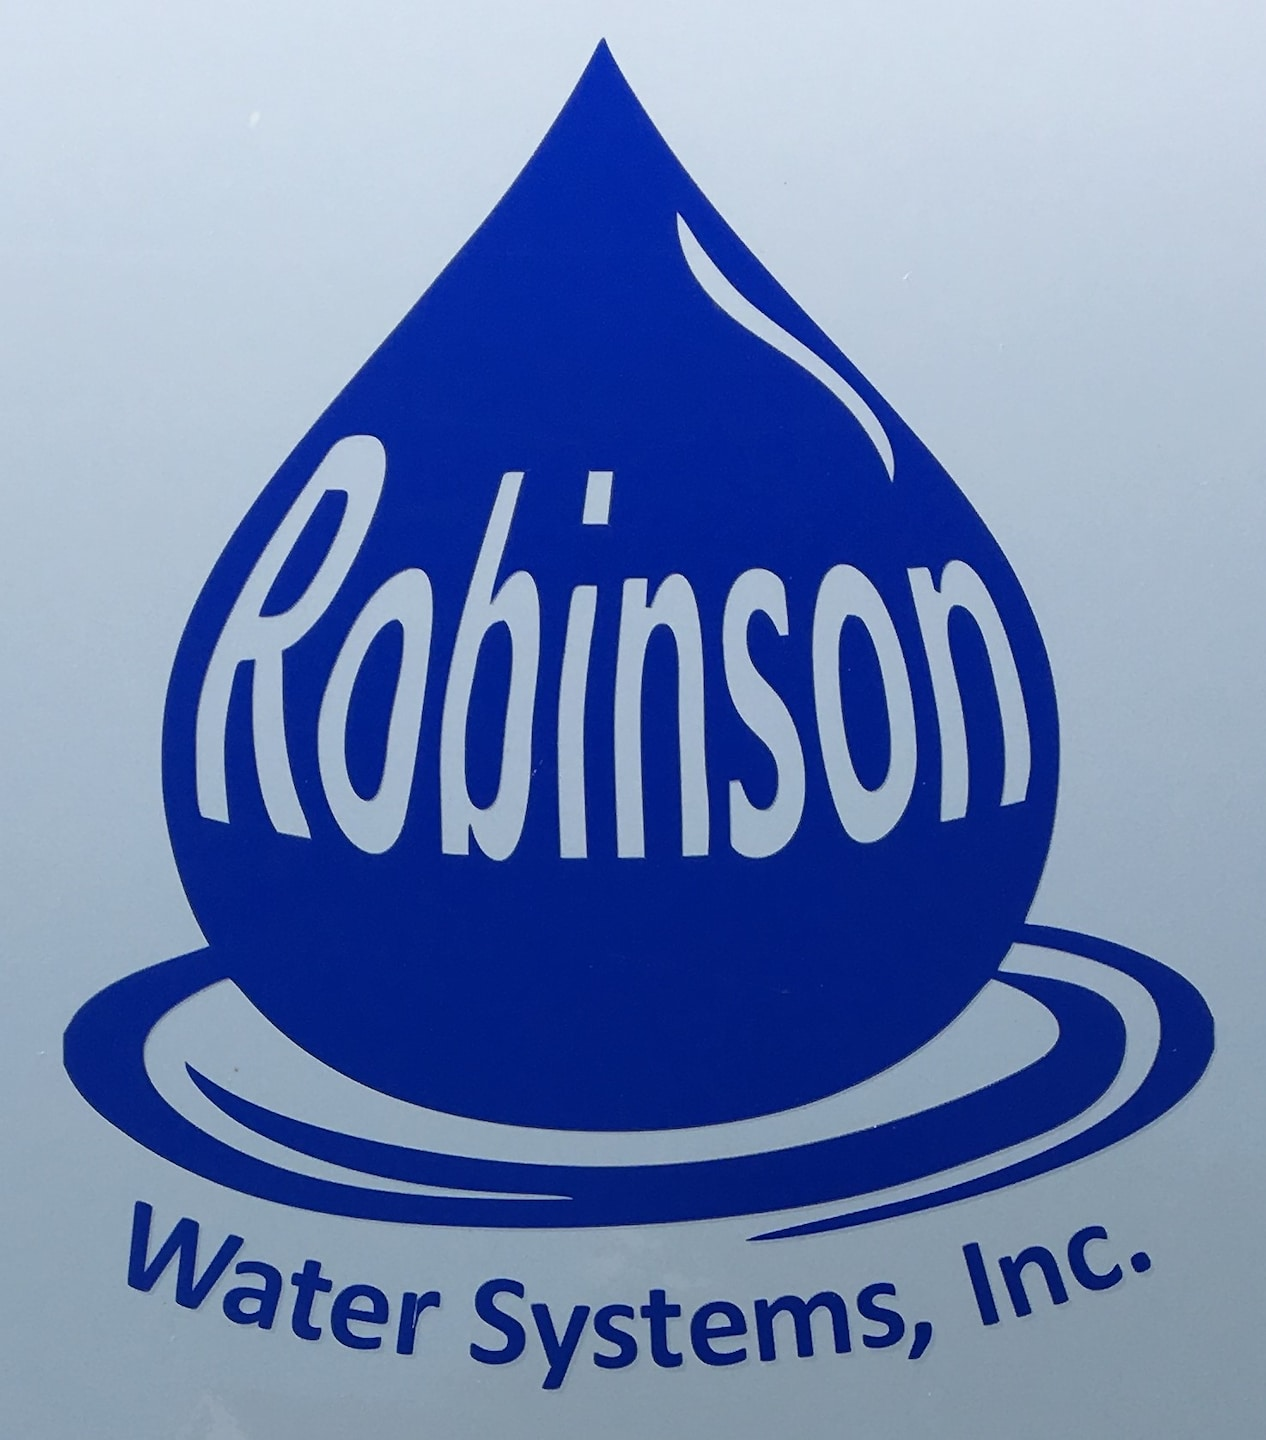 ROBINSON WATER SYSTEMS